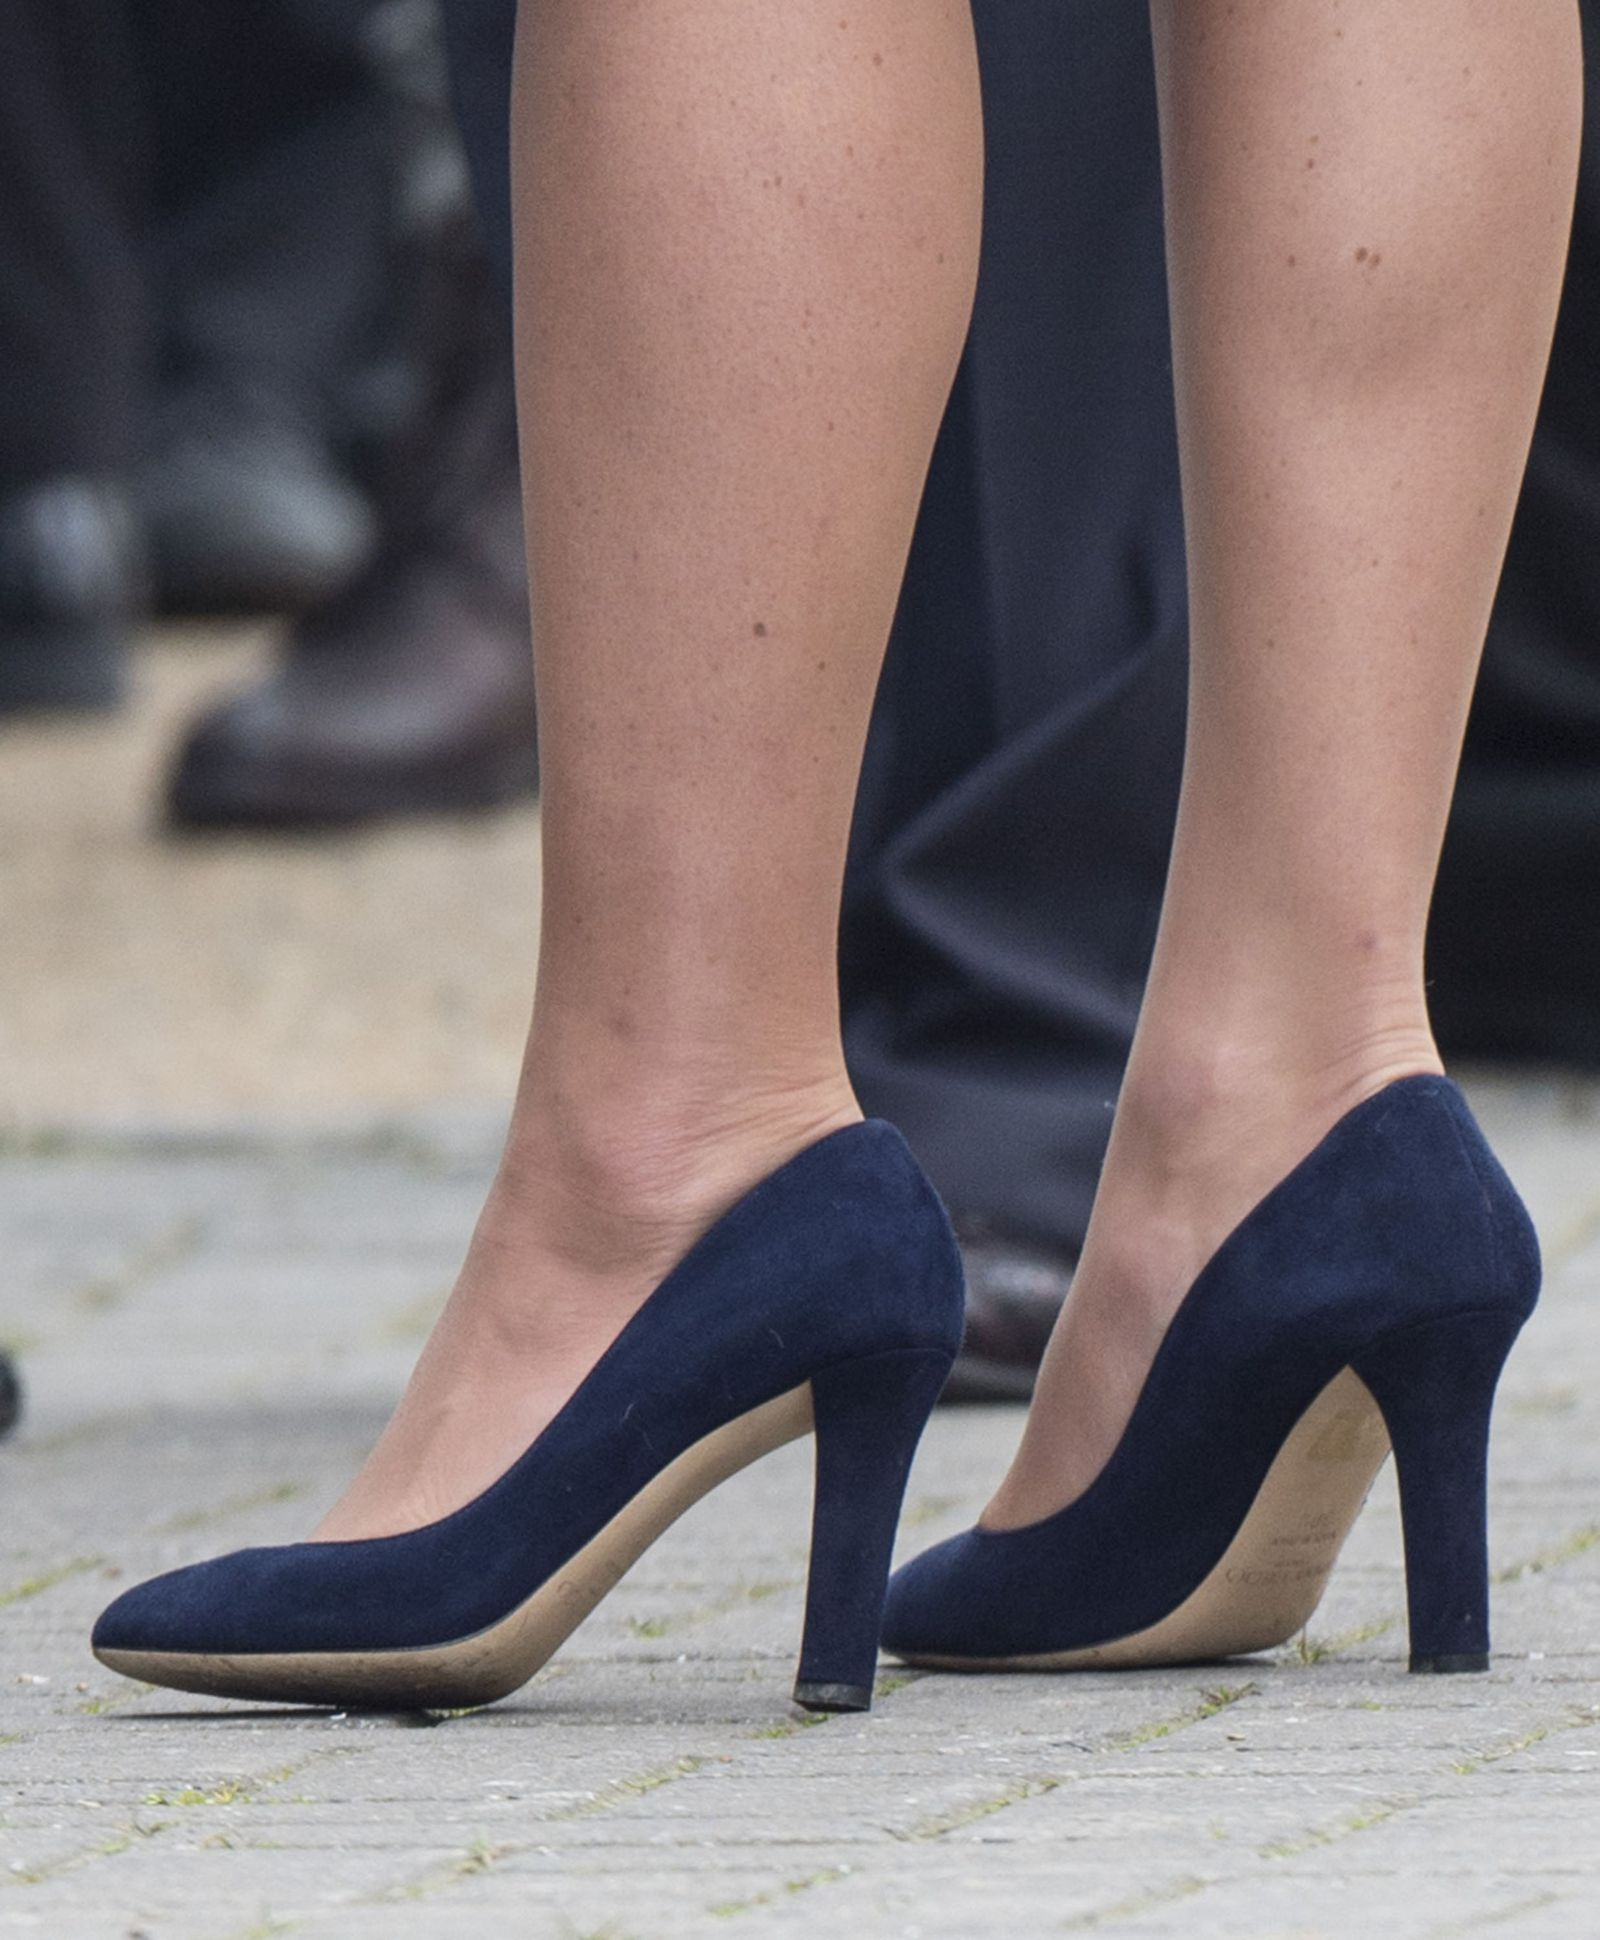 b6bca786c21 Every pair of shoes Kate Middleton has ever worn